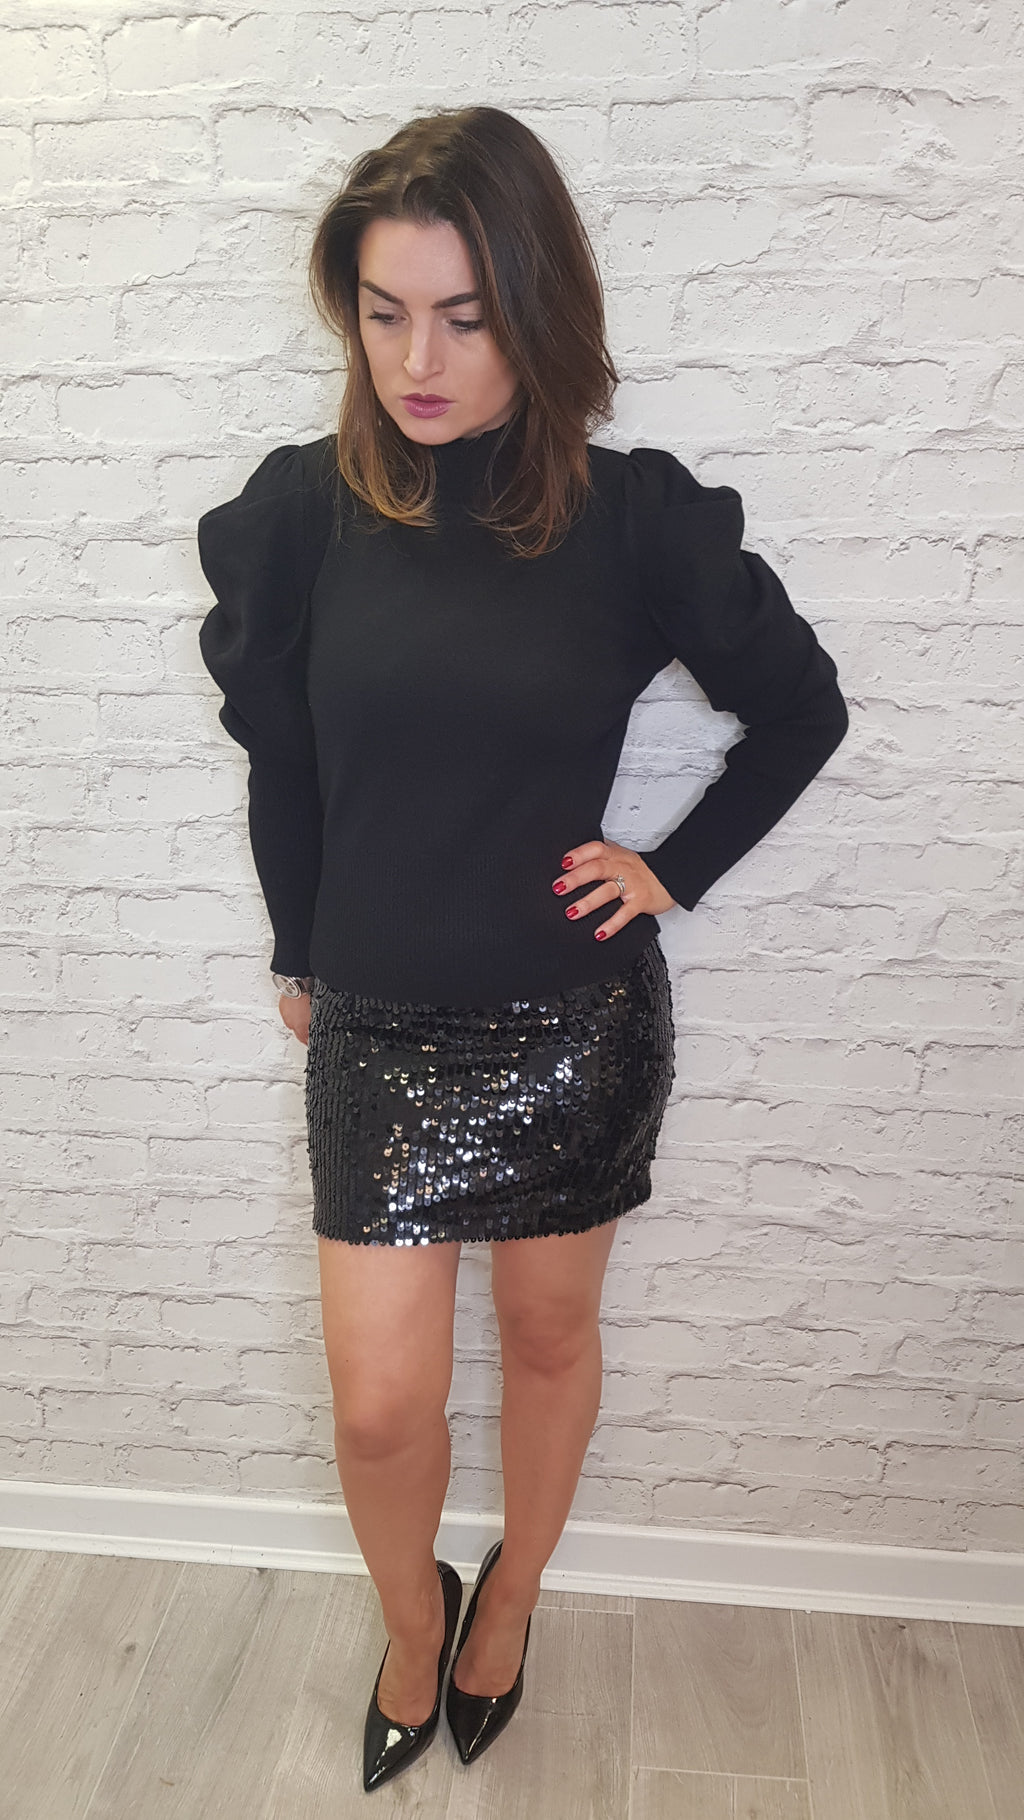 Ashley Sequin Mini Skirt Black - SIZE SMALL (6)